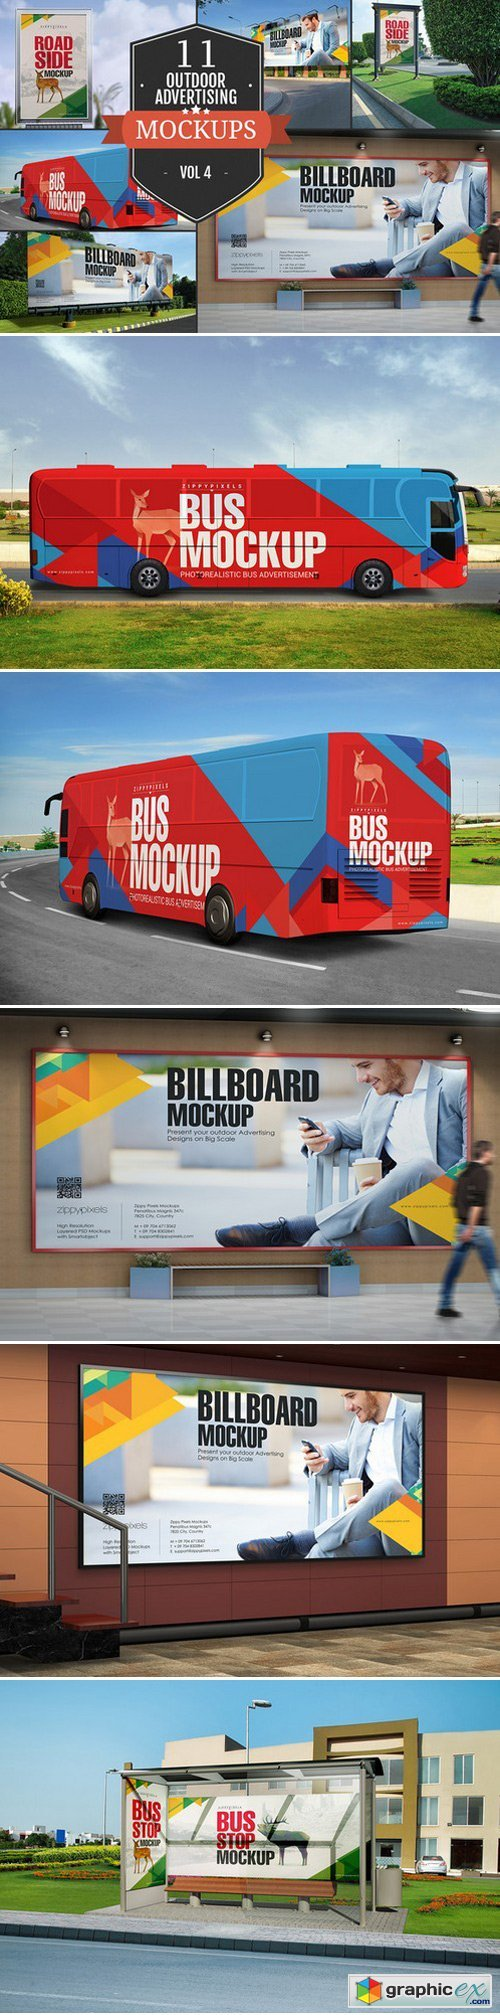 Outdoor Advertising Mockups Vol. 4